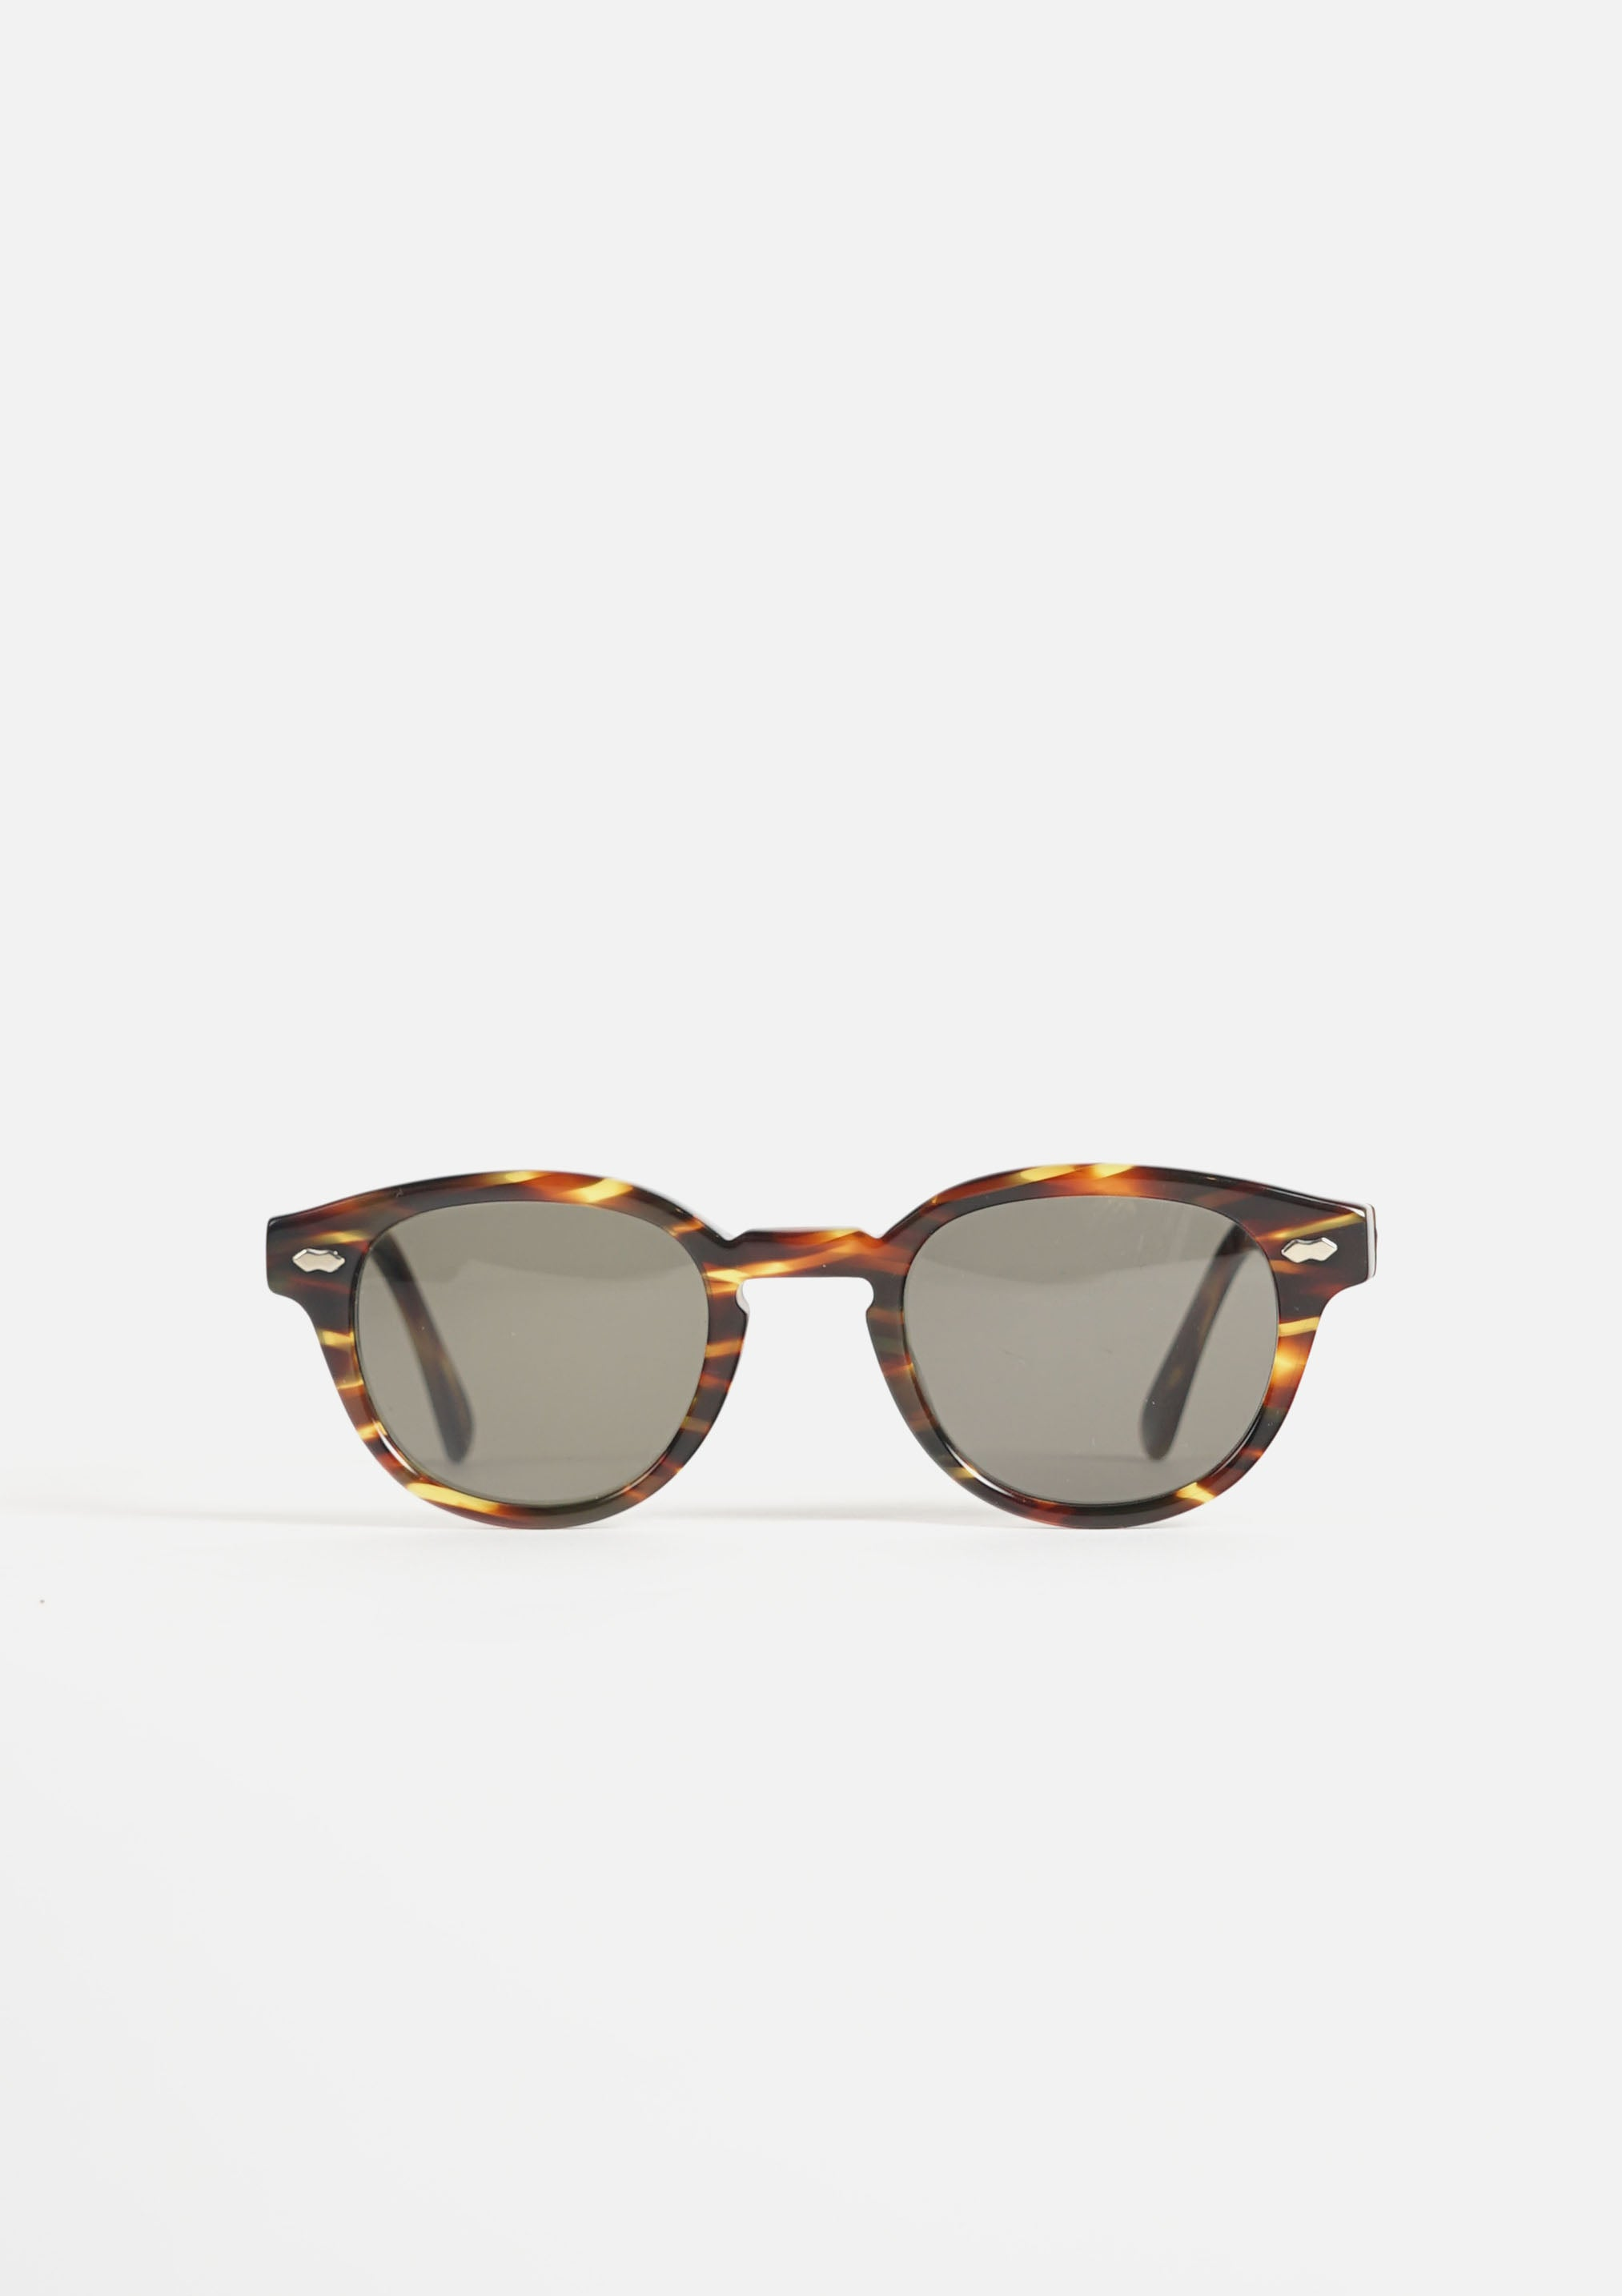 MODEL 511 Sunglasses  Tortoise